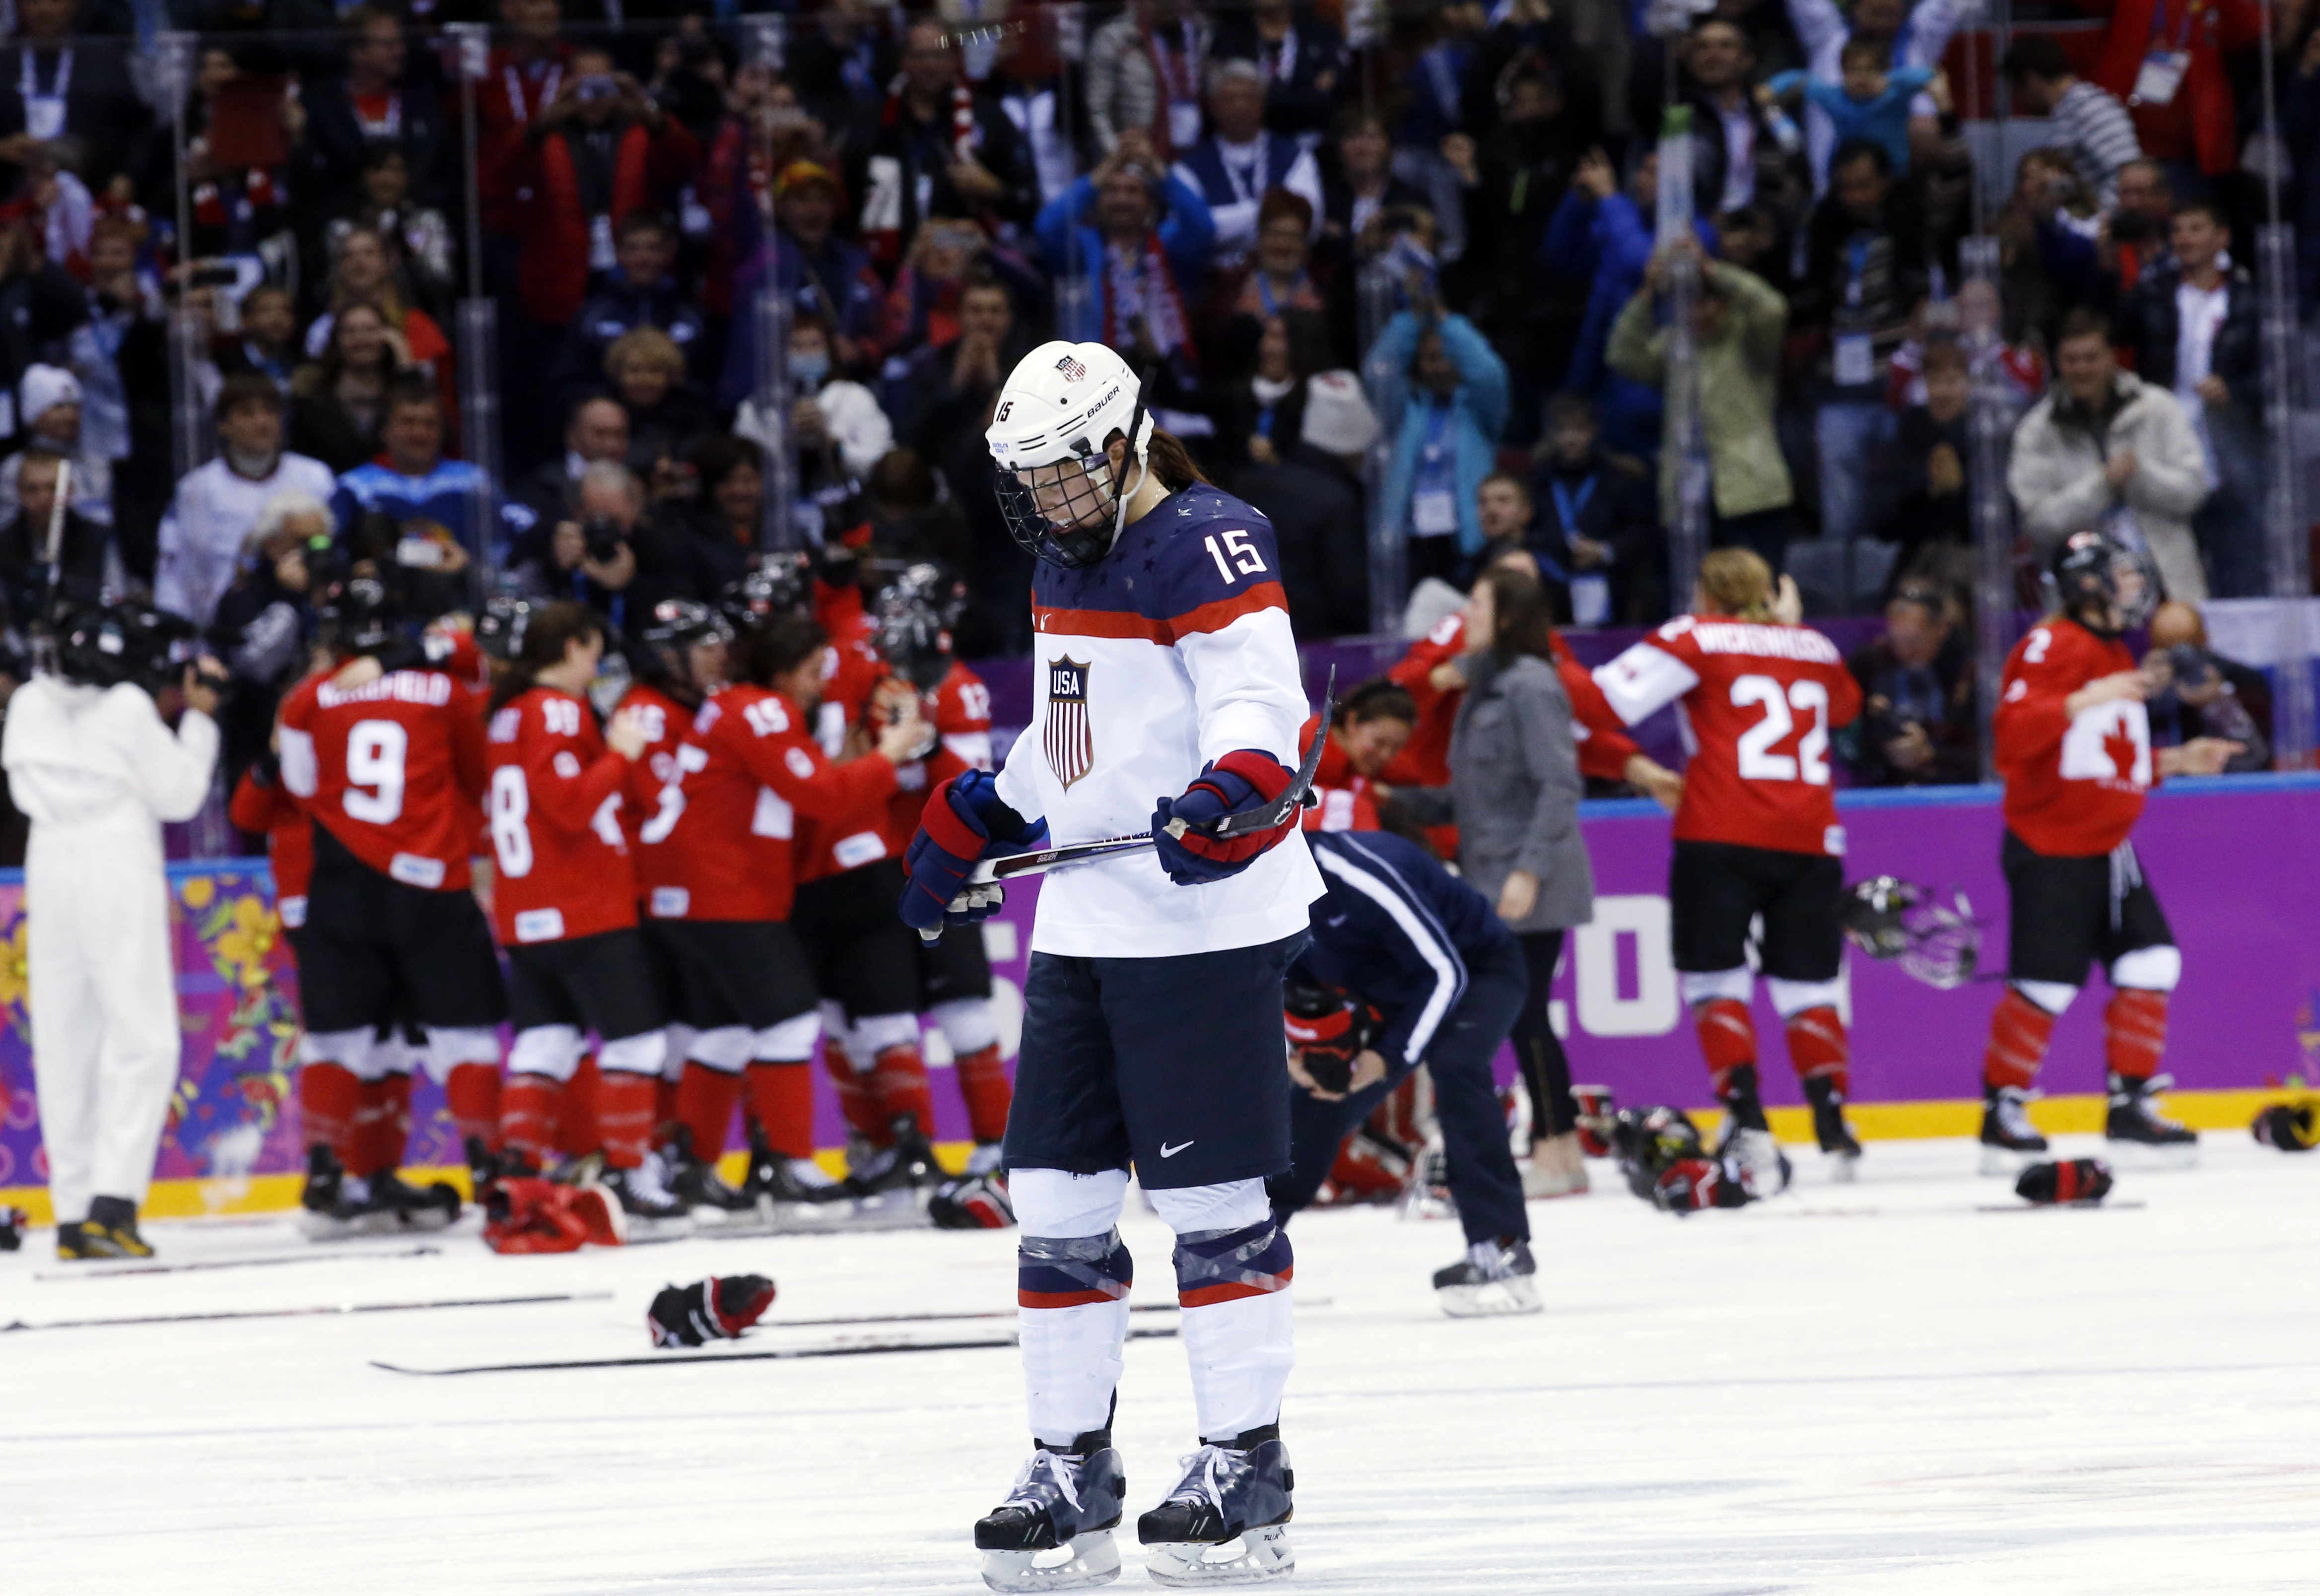 Anne Schleper of the United States (15) skates back to the bench after Canada scored in overtime to win the women's gold medal ice hockey game 3-2 at the 2014 Winter Olympics, Thursday, Feb. 20, 2014, in Sochi, Russia. (AP Photo/Matt Slocum)